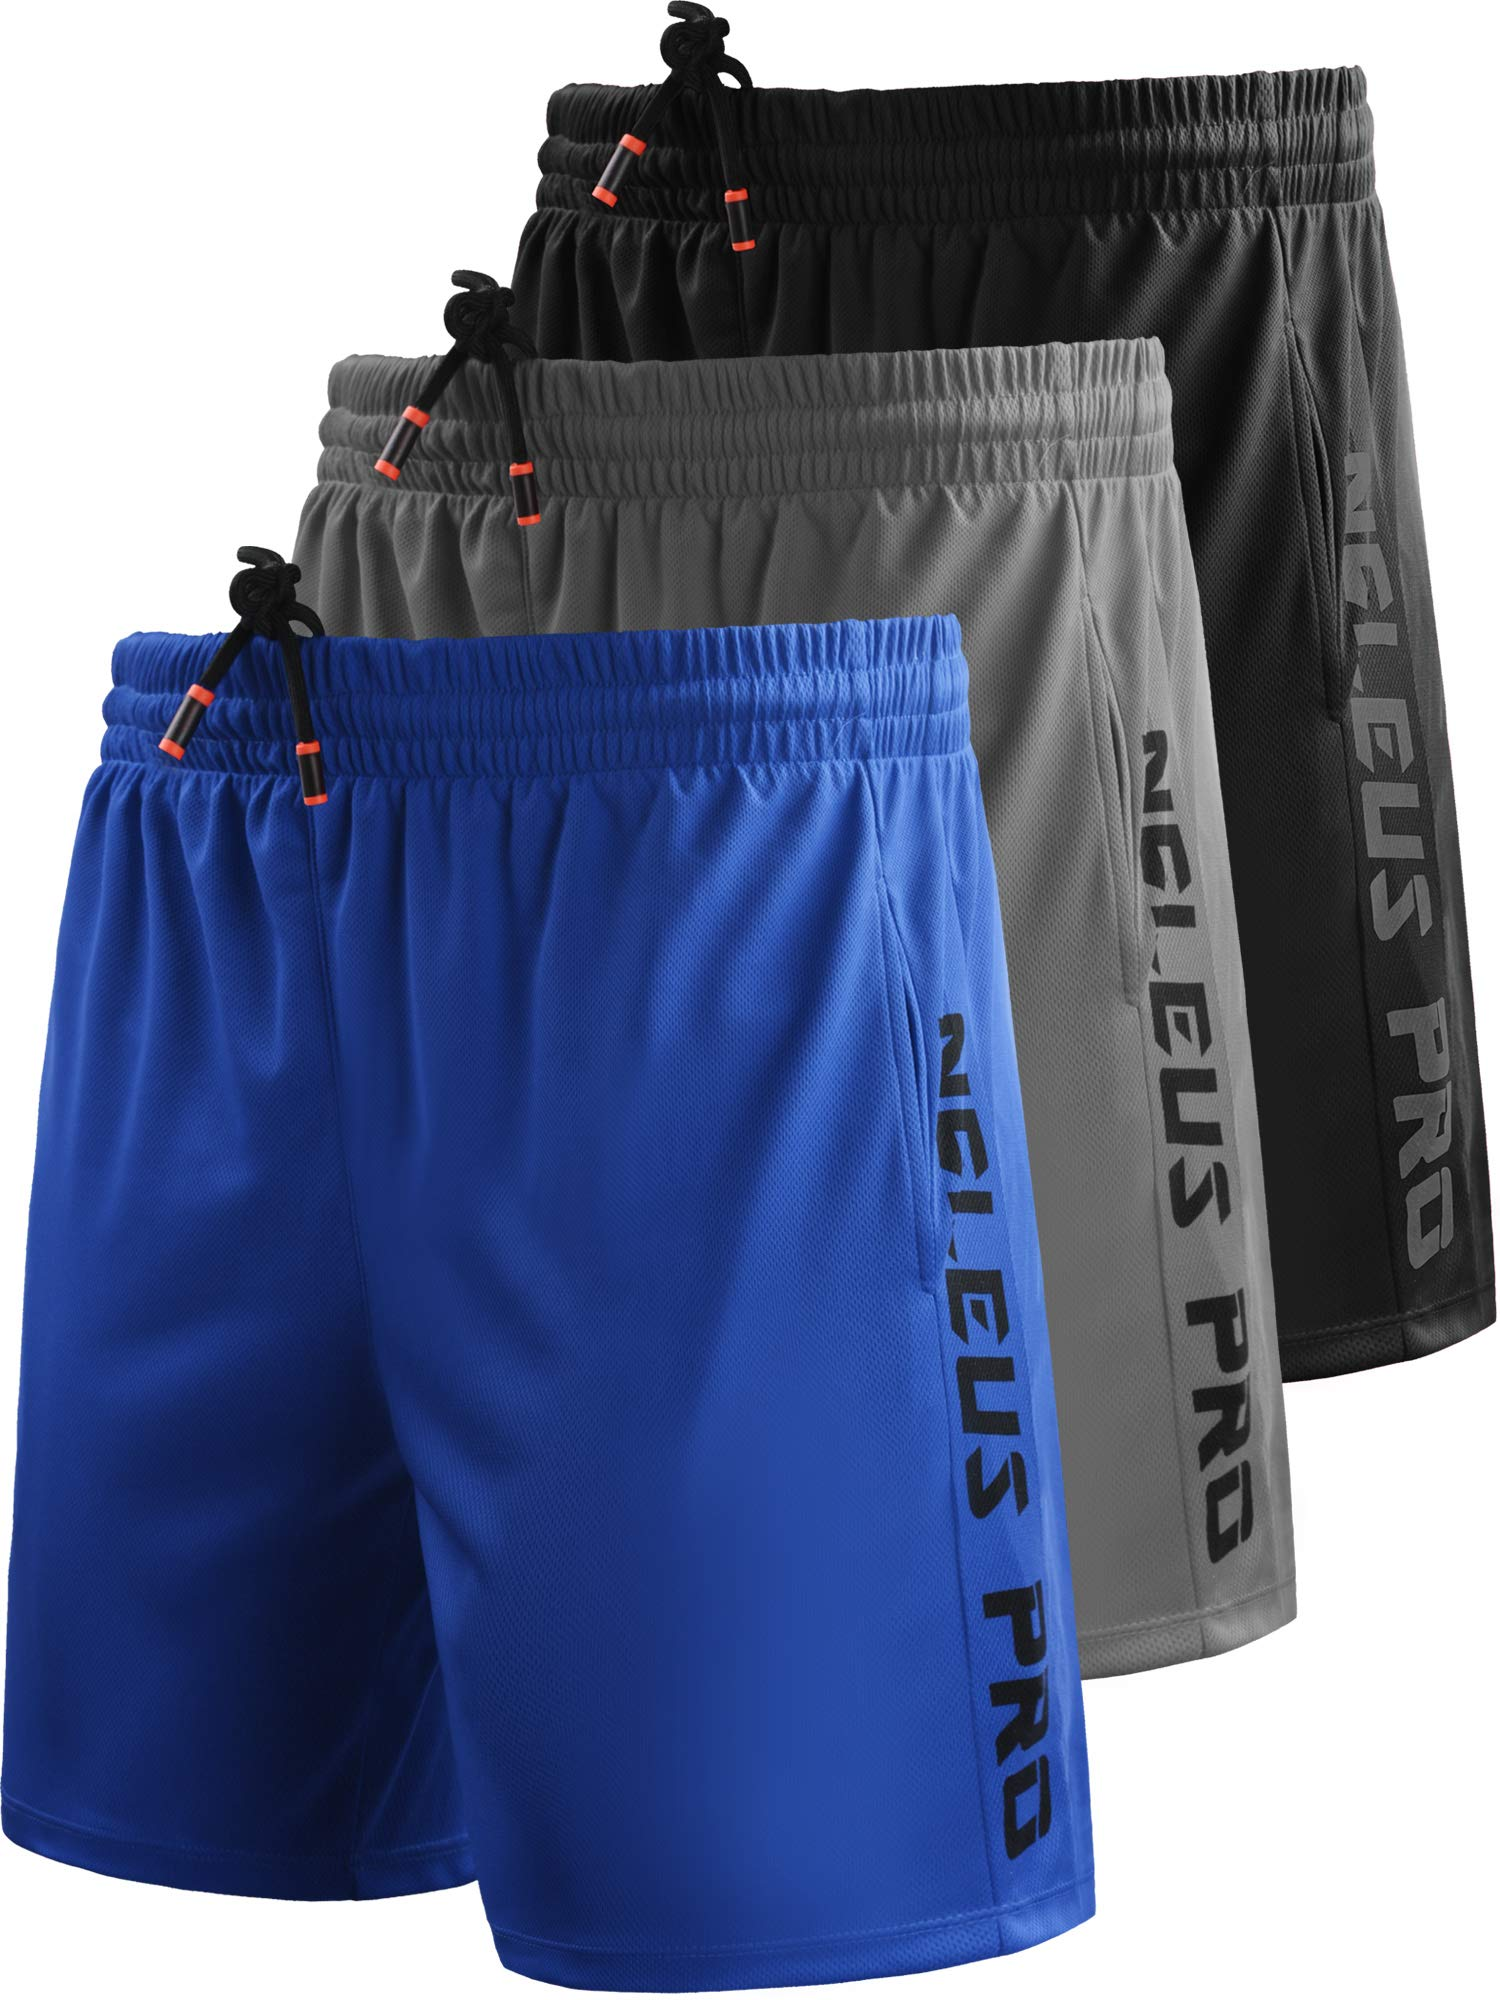 Neleus Men's 7'' Workout Running Shorts with Pockets,6056,3 Pack,Black,Grey,Blue,XS,EU S by Neleus